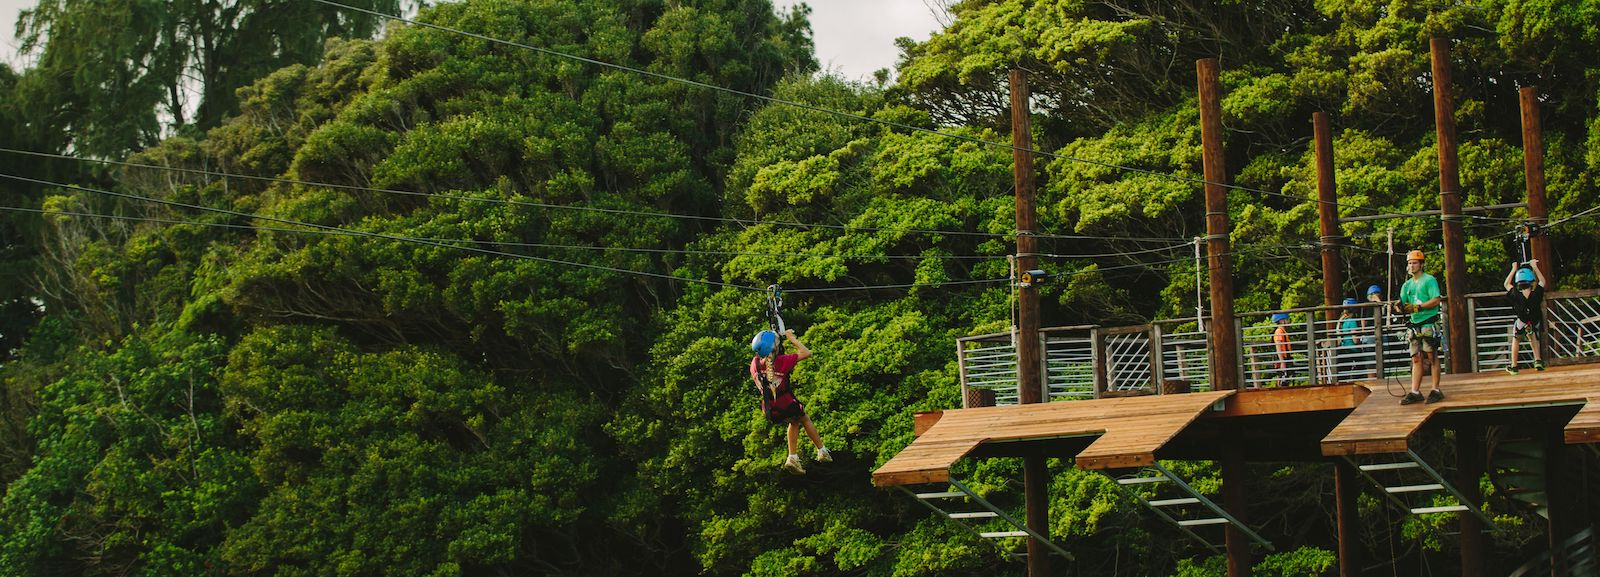 5 of the Best Things to Do in Oahu with Kids That Are Lots of Fun